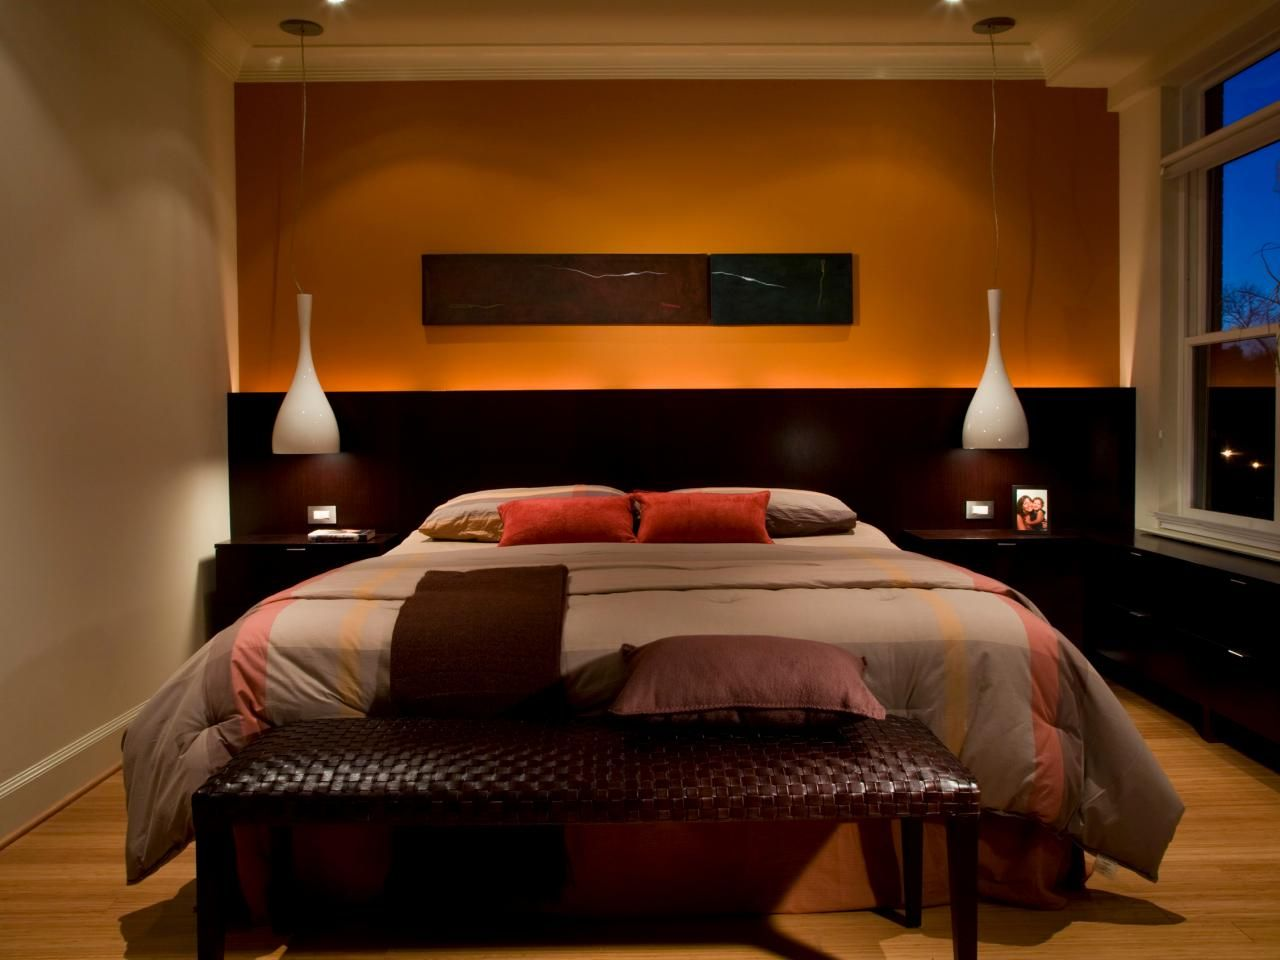 Beau Contemporary (Modern, Retro) Bedroom By Andreas Charalambous